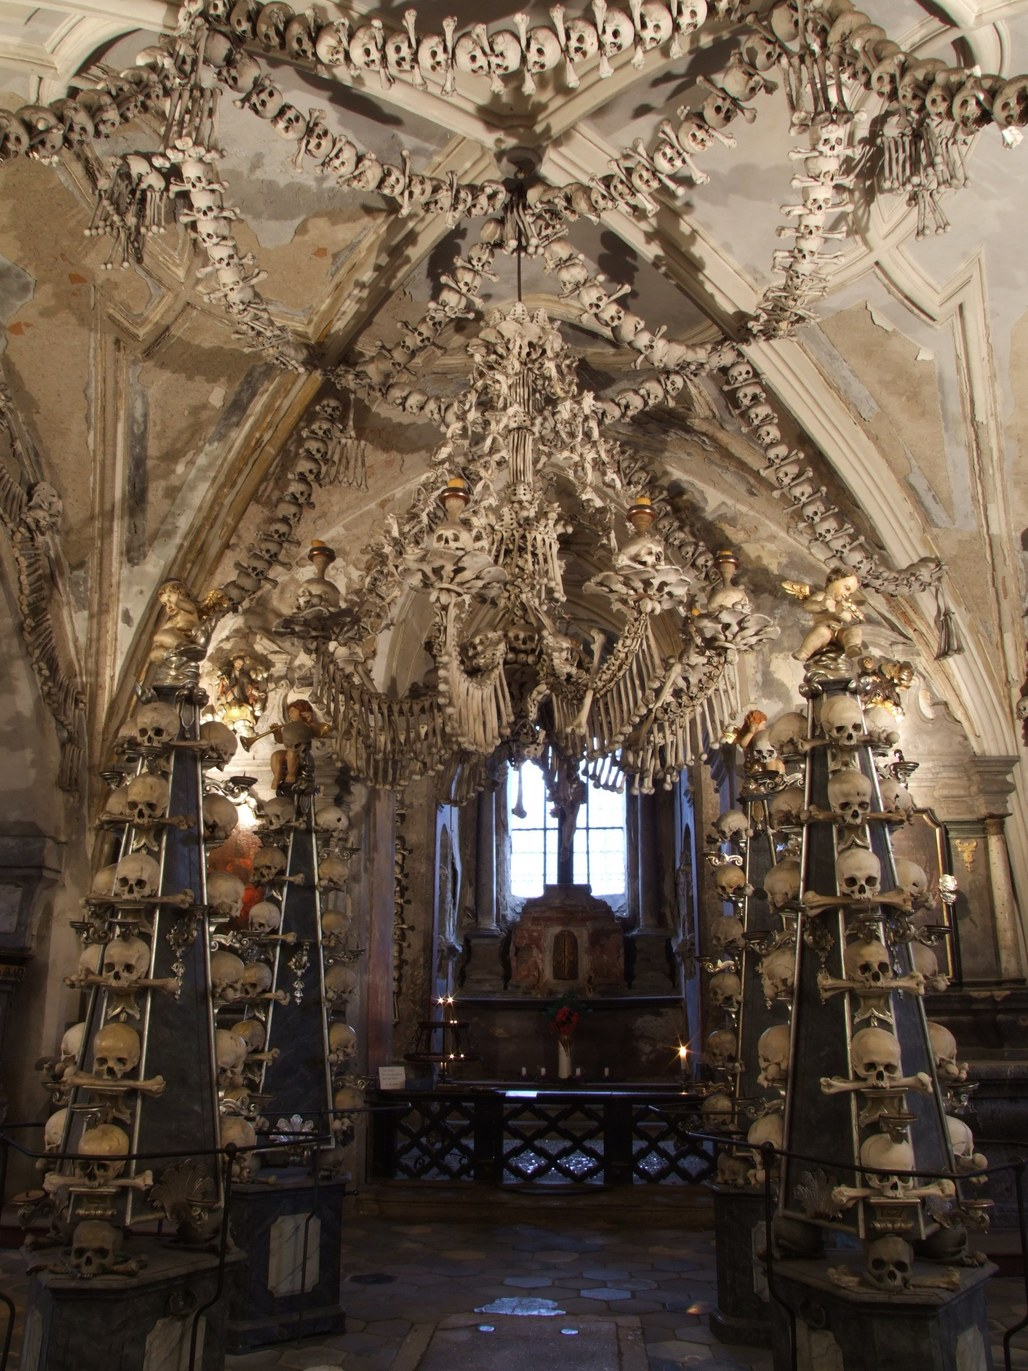 The Sedlec Ossuary in the Czech Republic. Image via wikipedia.org.